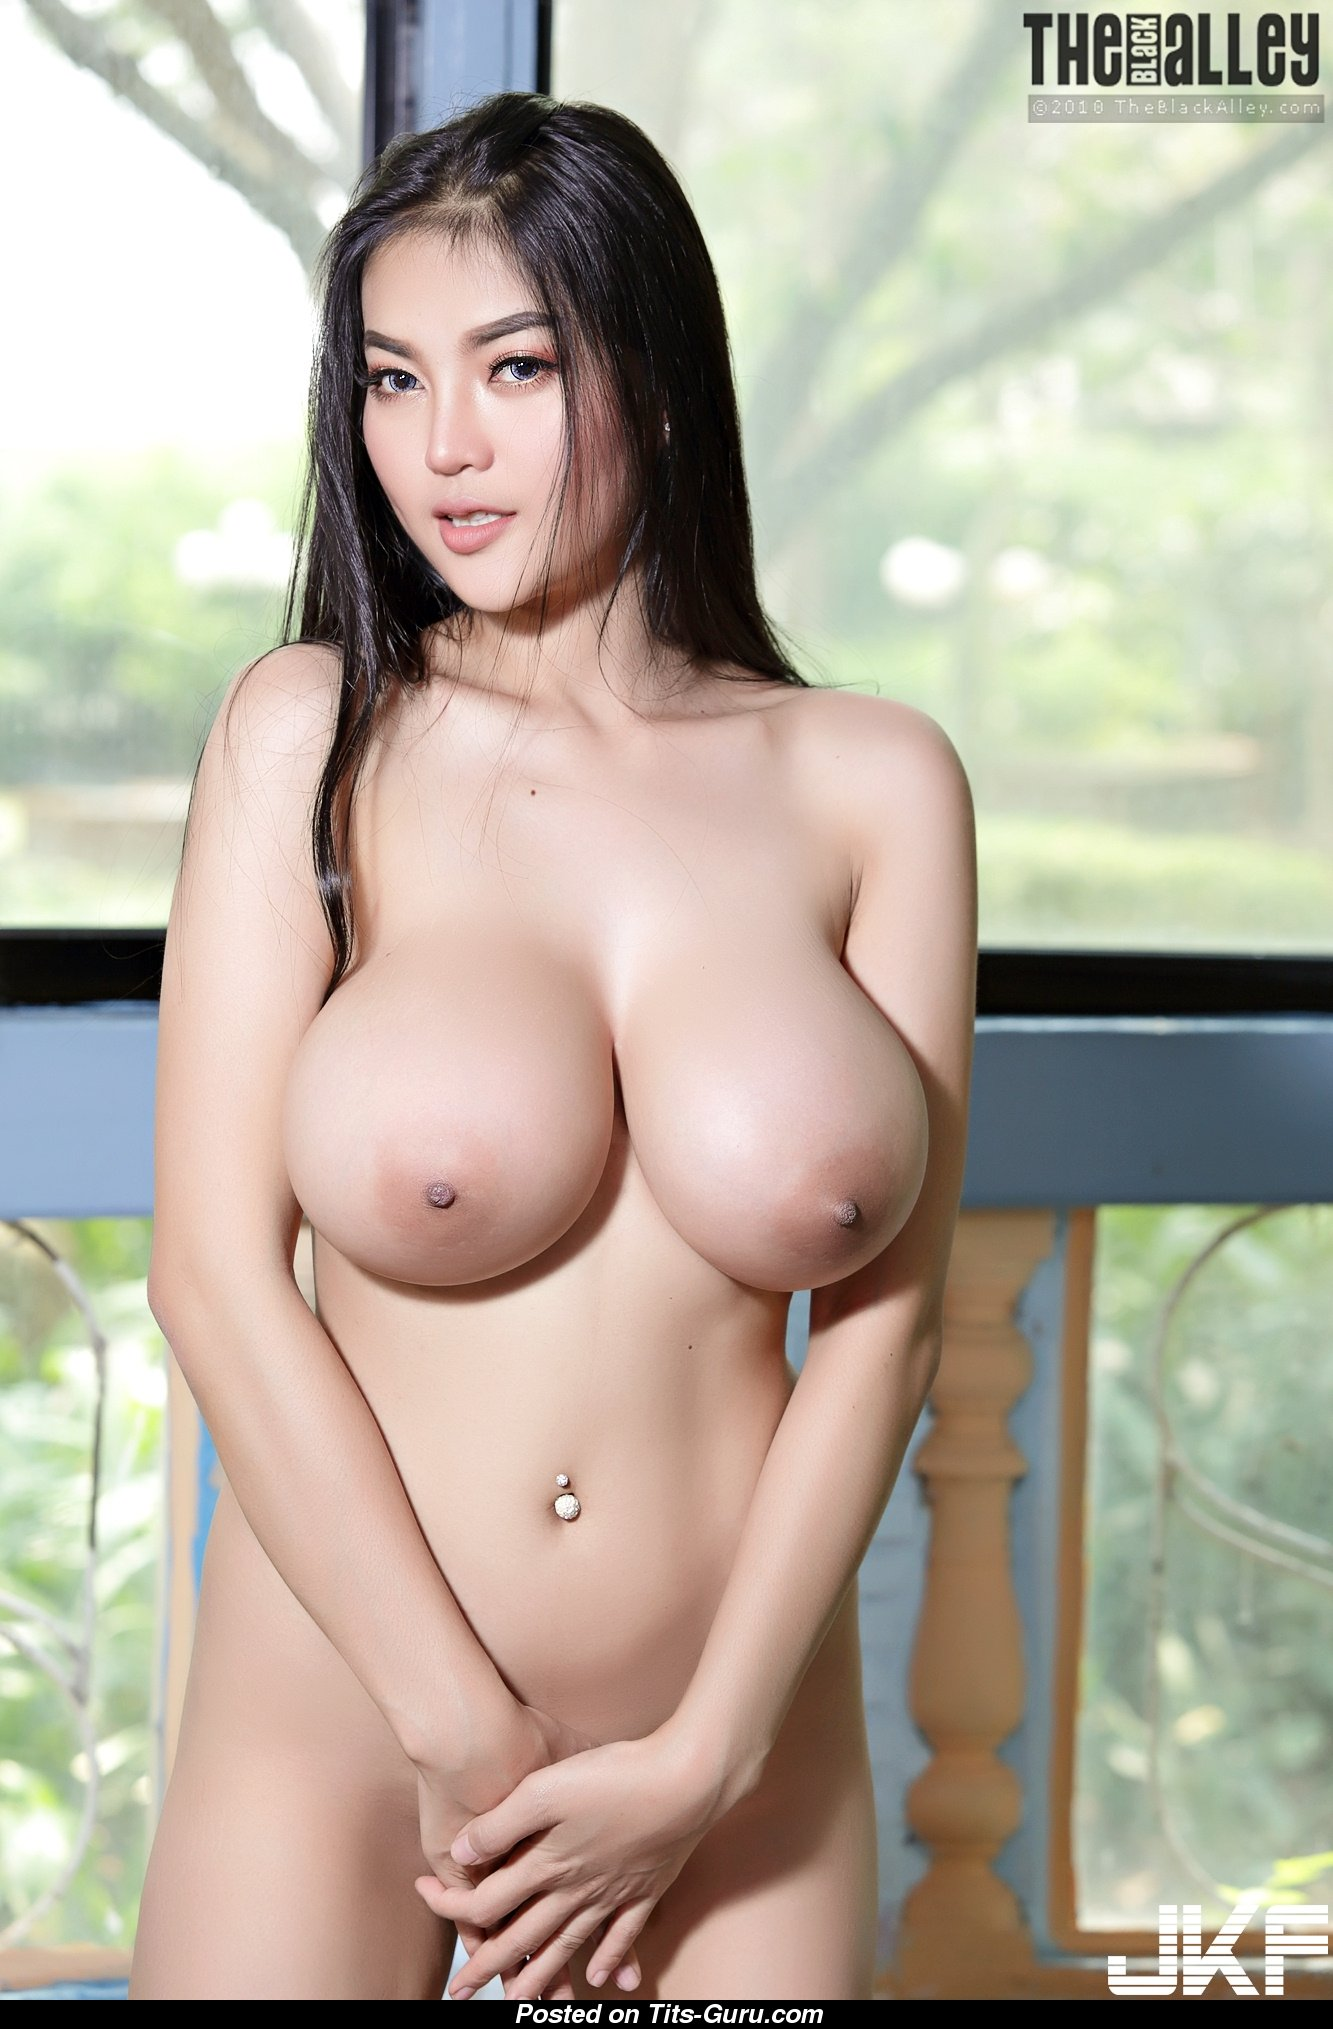 pale and curvy naked girl